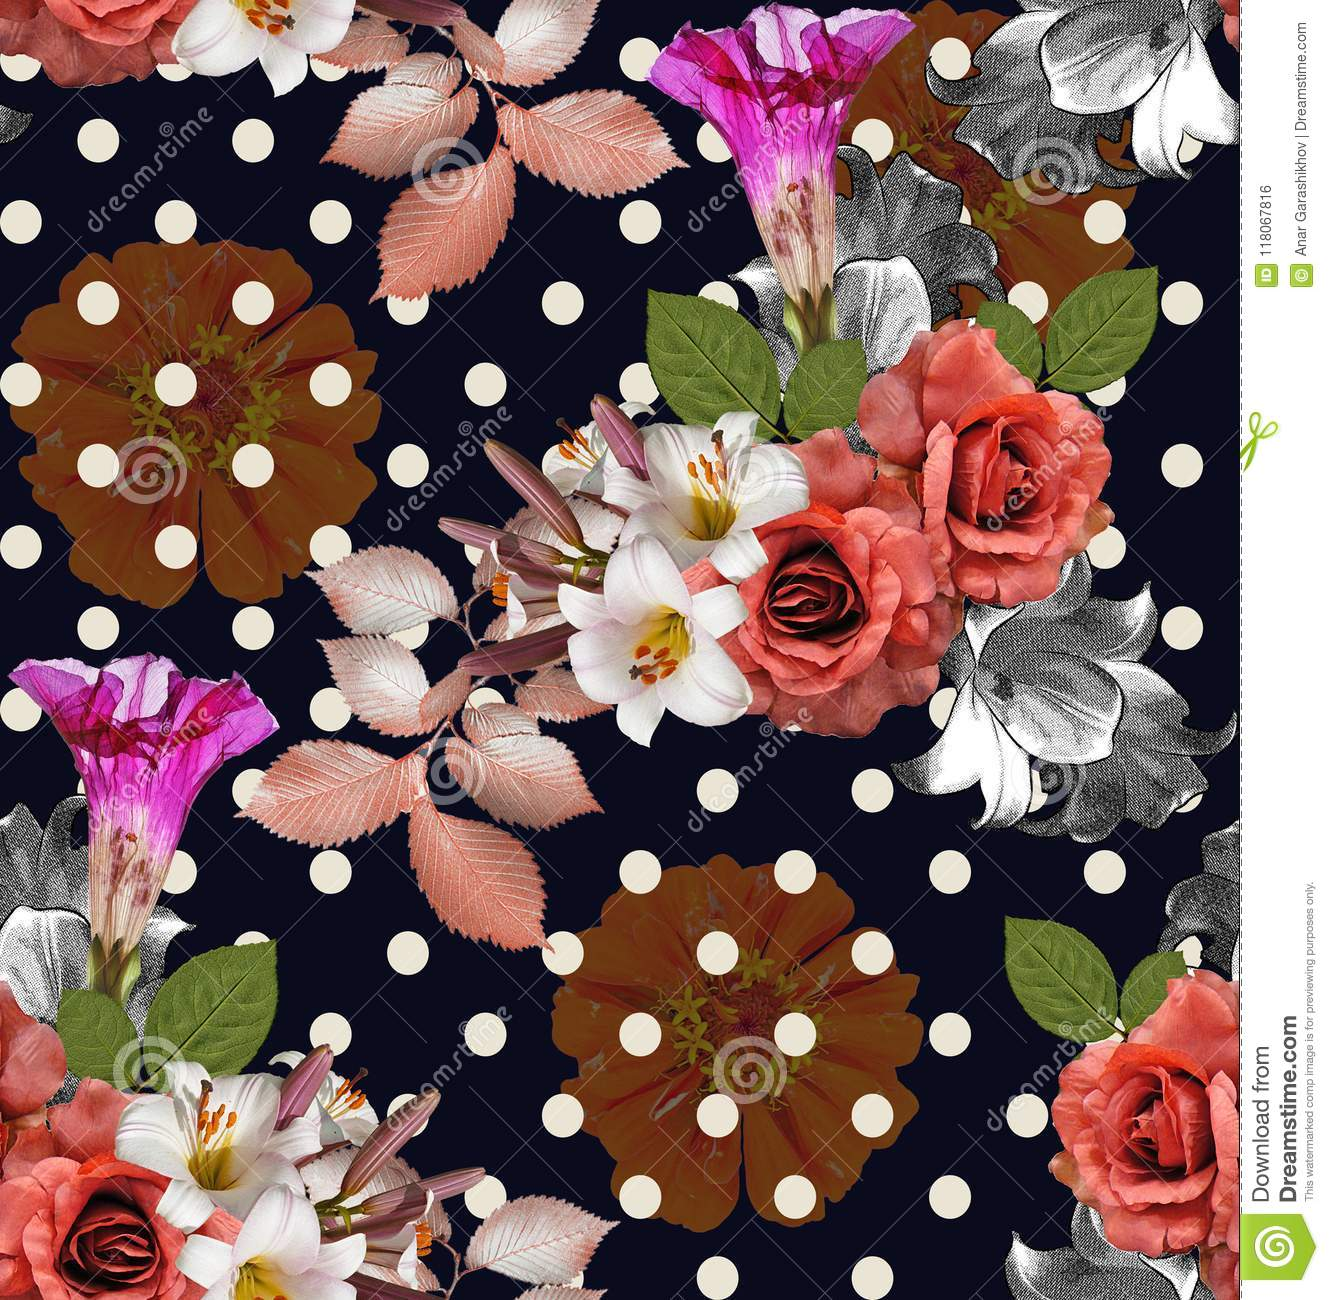 Seamless flowers with polka dot roses with lily and zinnia on n seamless flowers with polka dot roses with lily and zinnia on n izmirmasajfo